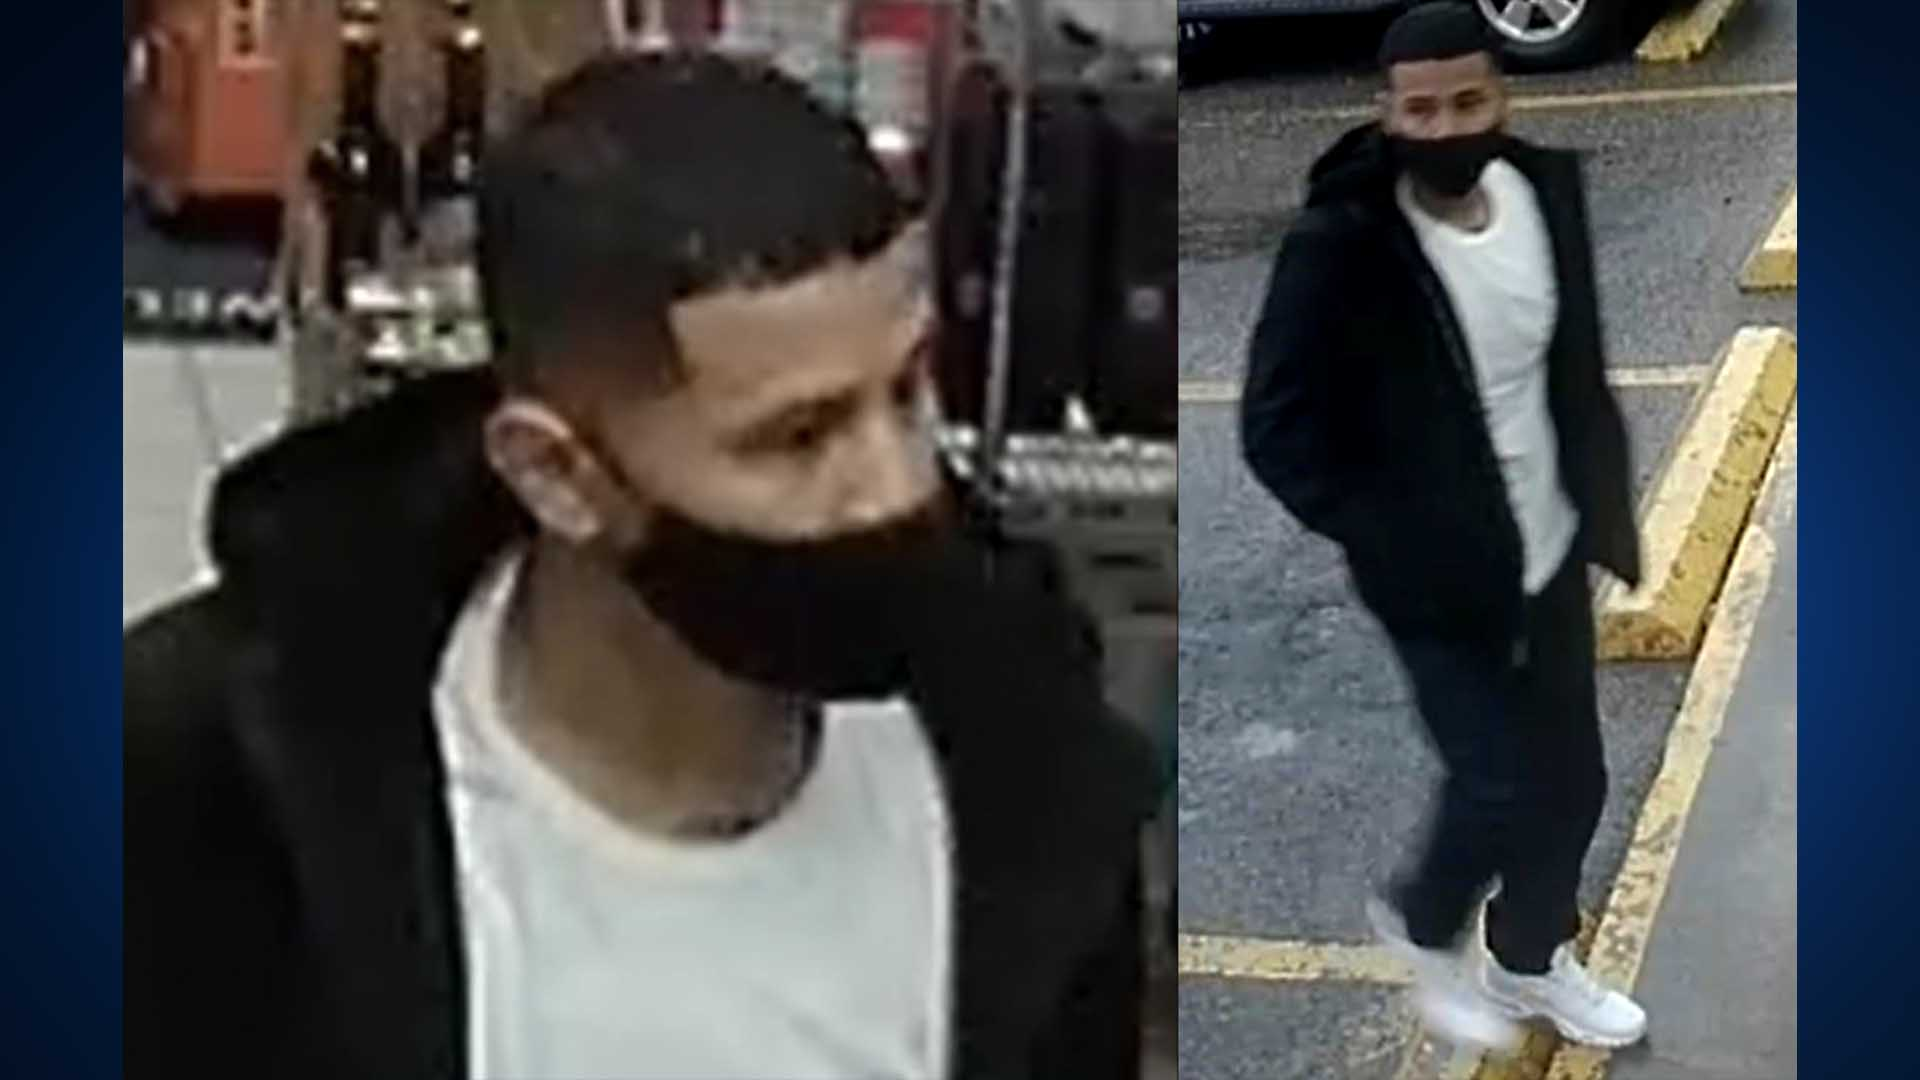 Suspect in Brodie Food Mart robbery (Austin Police Photo)